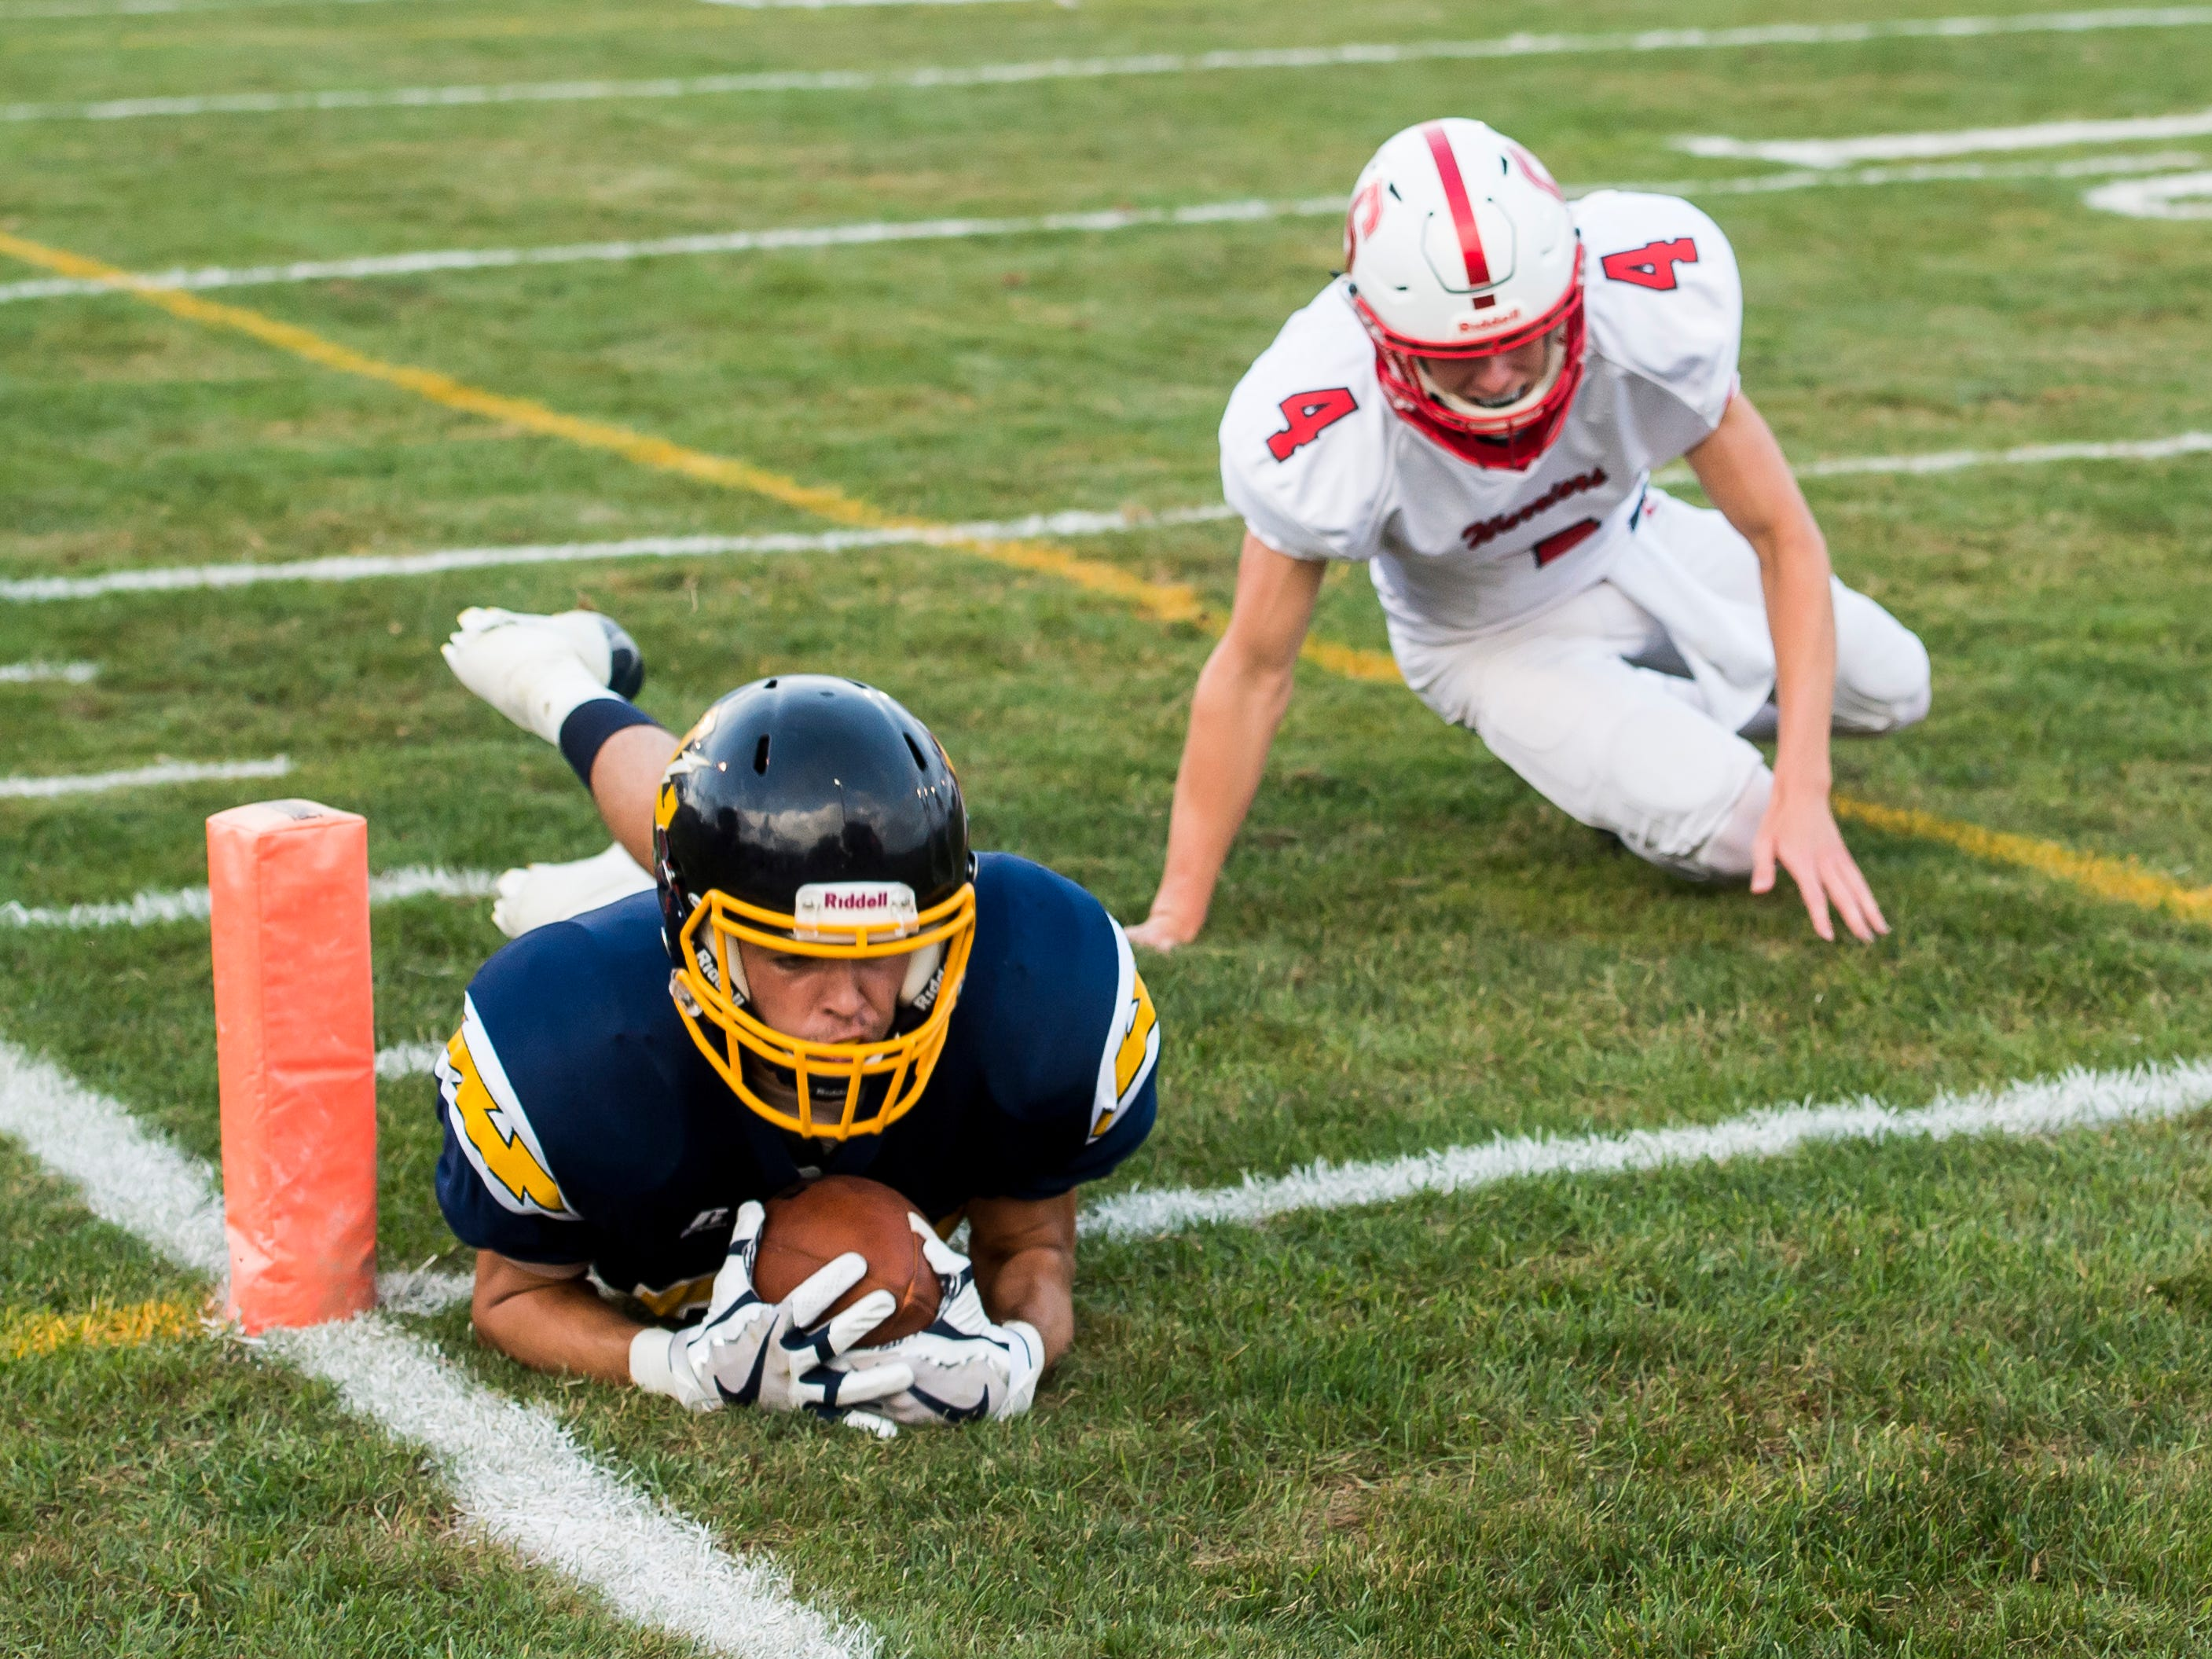 Littlestown's Jacob Thomas dives into the end zone to score a touchdown against Susquehannock on Friday, August 31, 2018. The Bolts beat the Warriors 29-14.